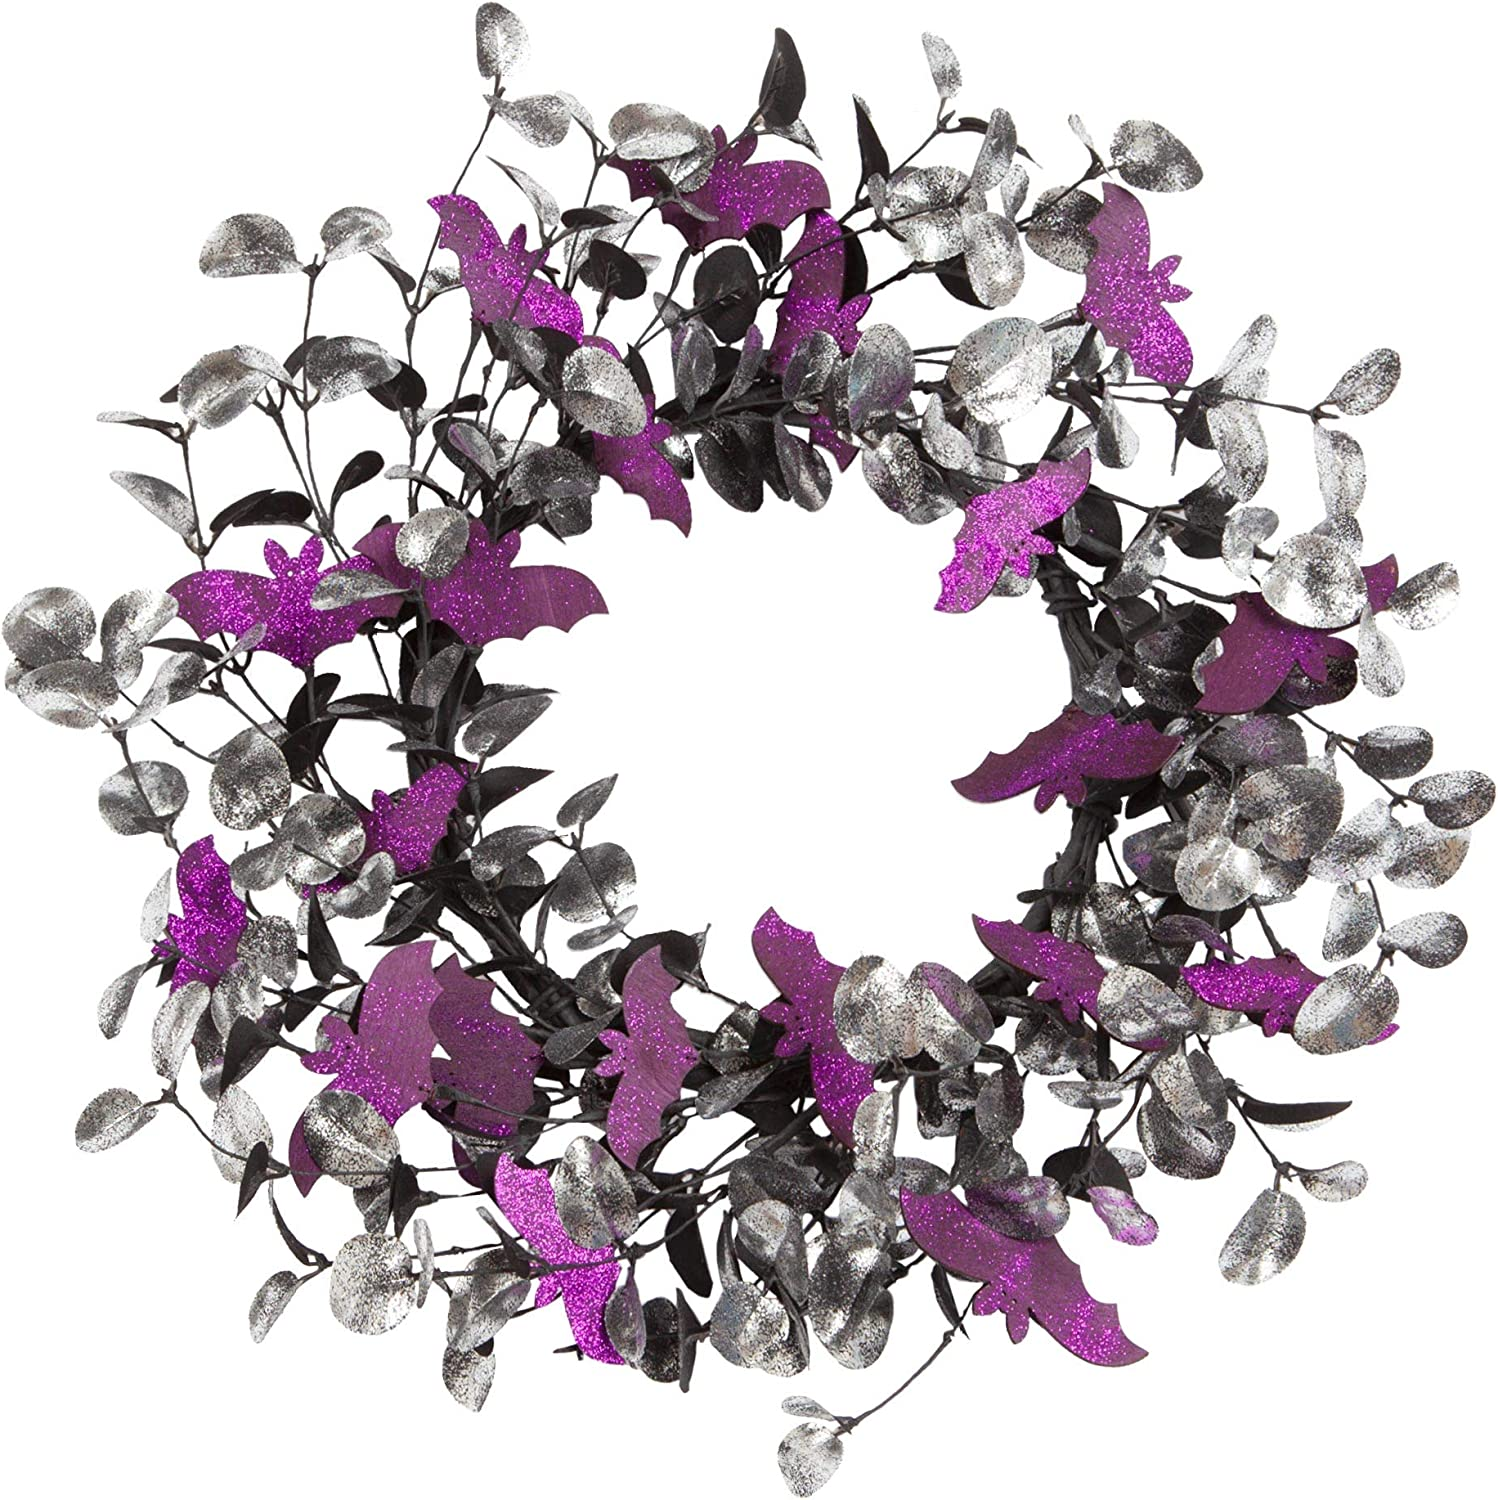 Skrantun 18 Inch Halloween Wreath Door Wreath with Bat Decorations Halloween Decorations with Glitter Decorations for Halloween Party